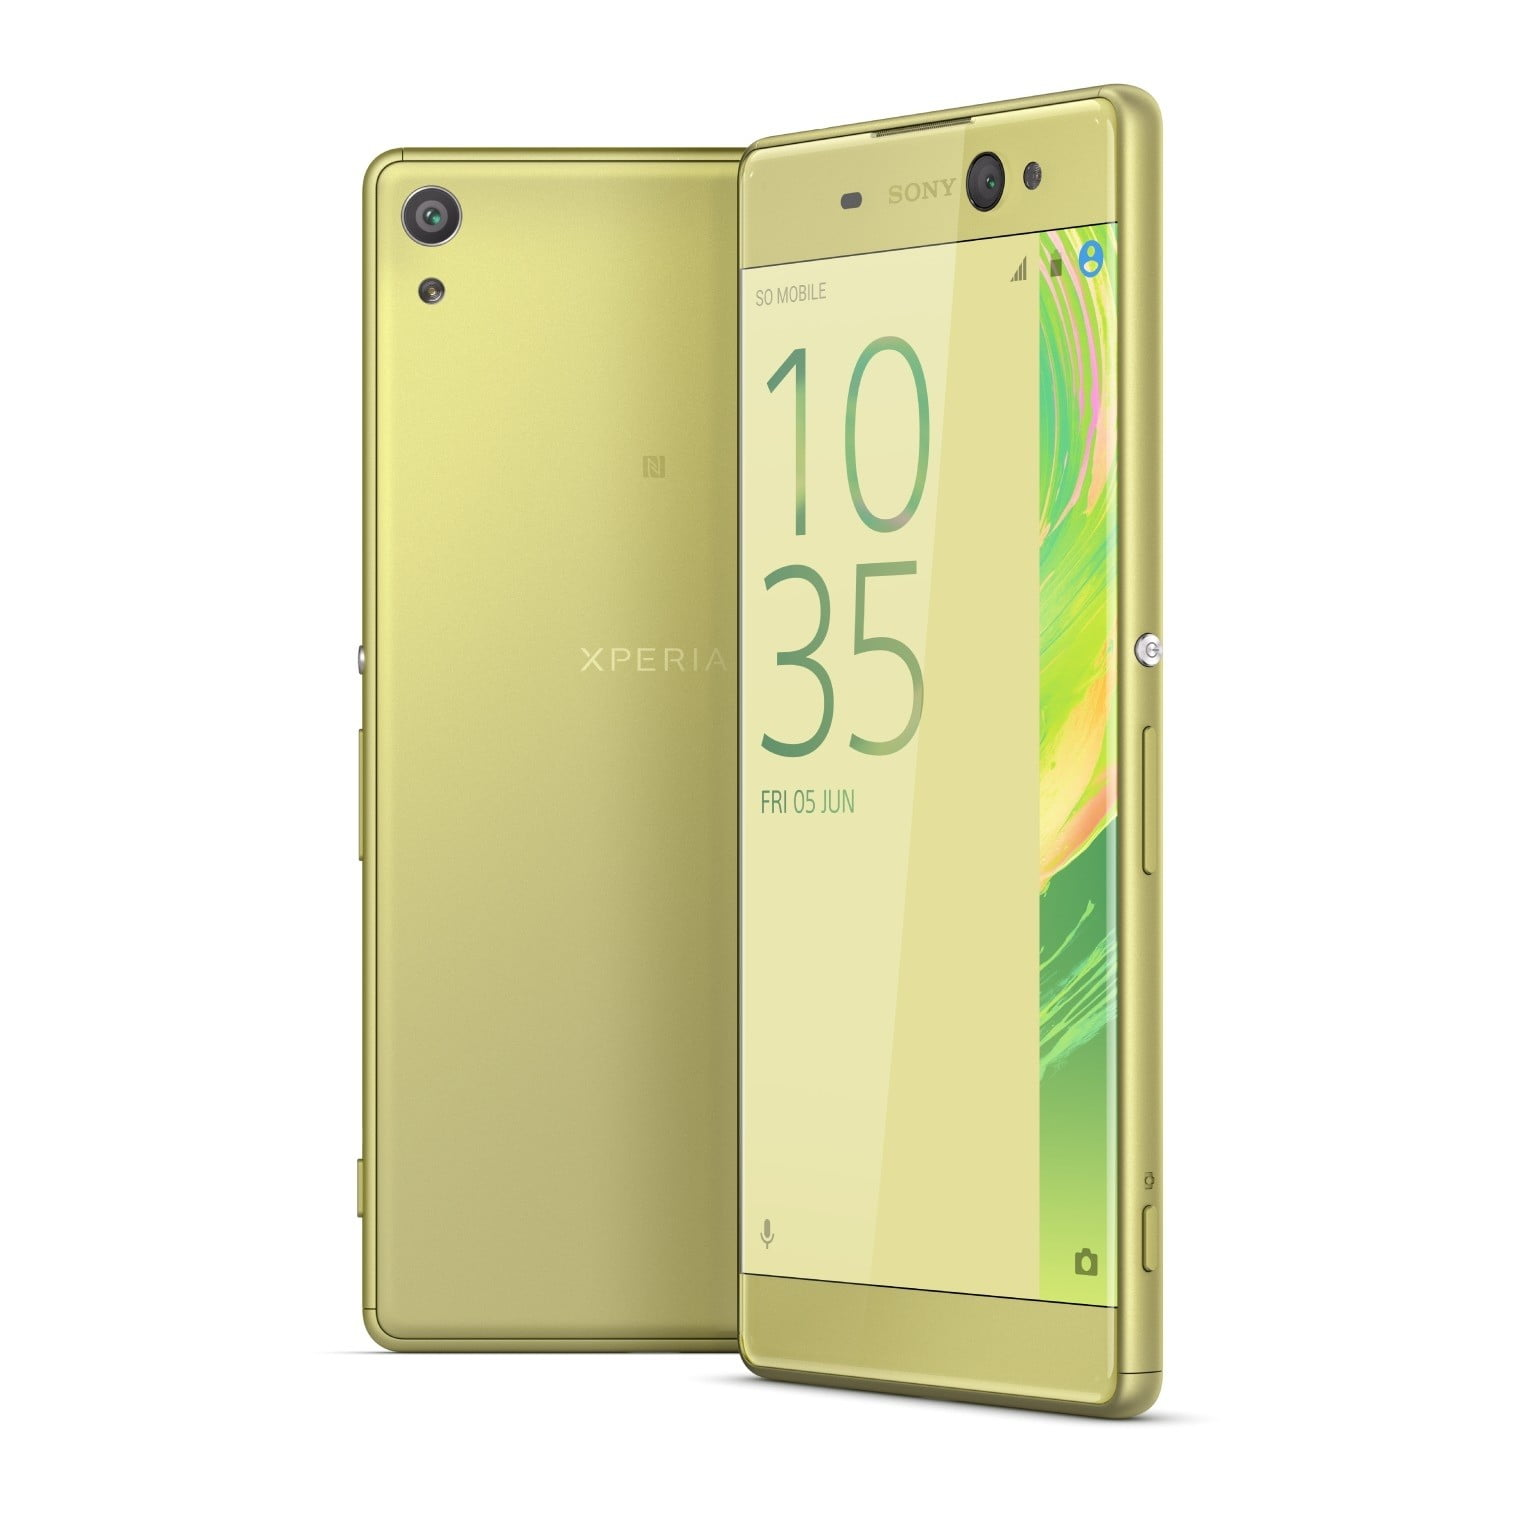 sony xperia xa ultra specifications release date price digital trends. Black Bedroom Furniture Sets. Home Design Ideas